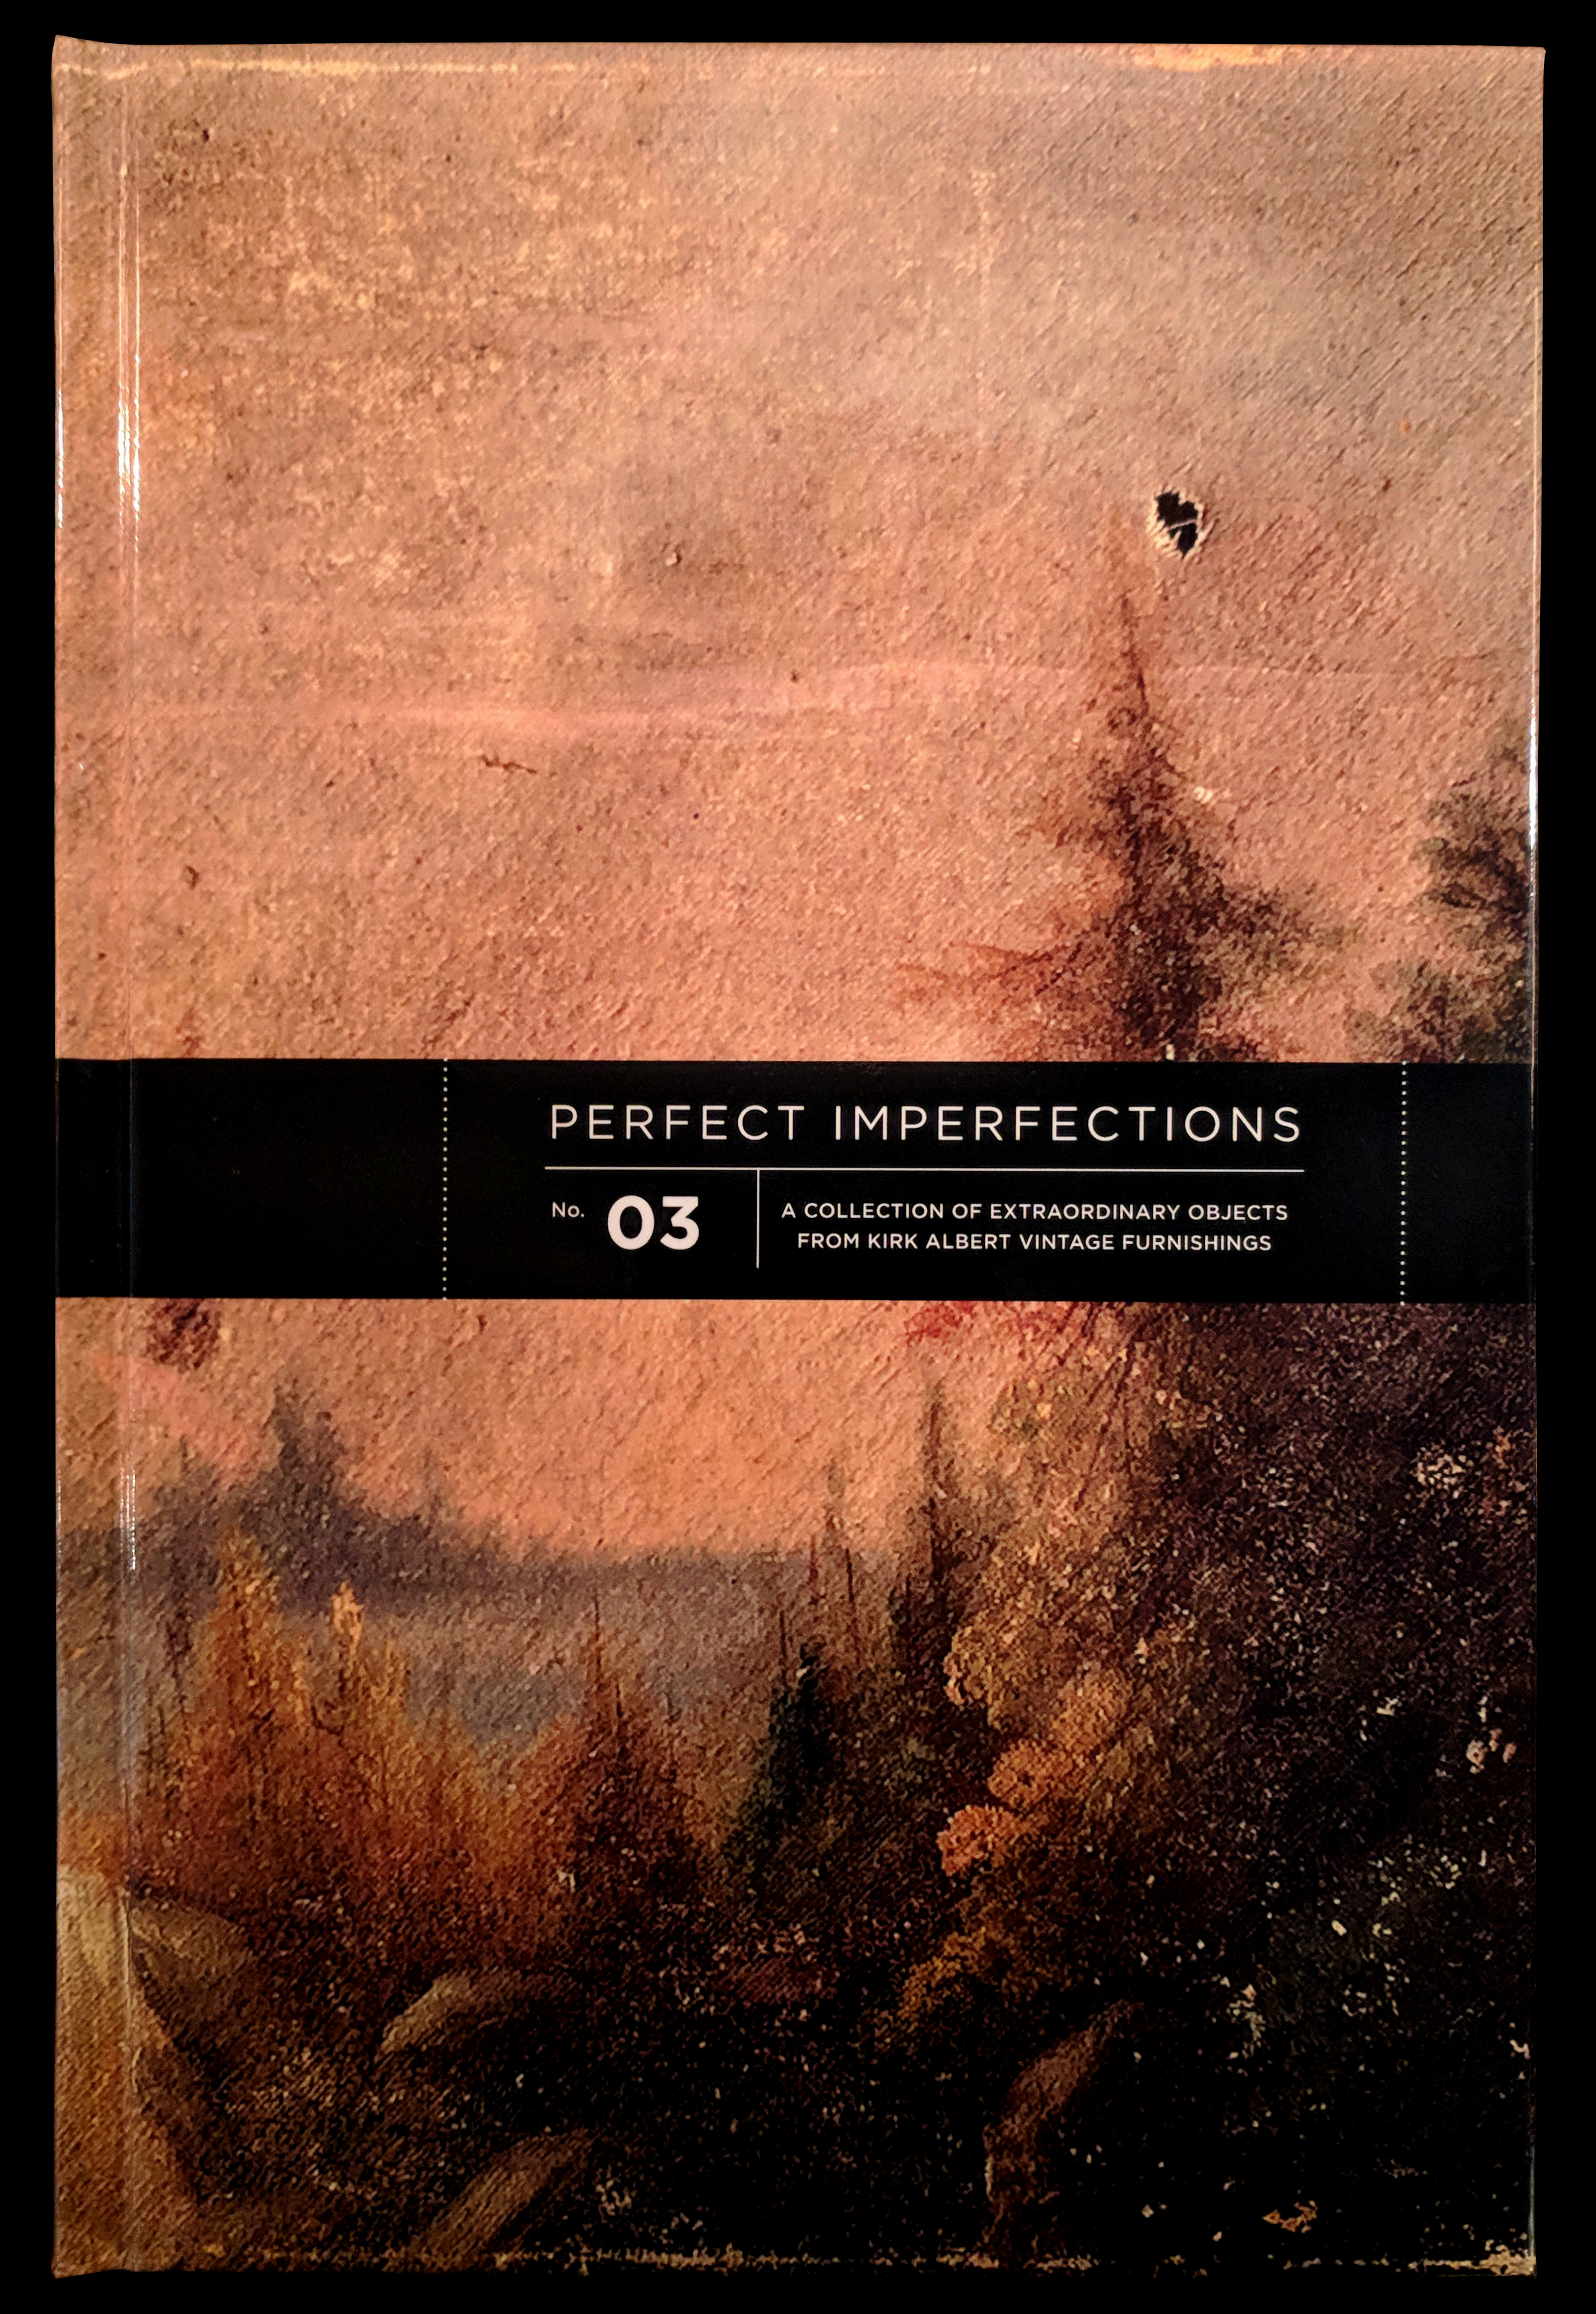 - New year, new addition! Check out Perfect Imperfections No.03, now available!